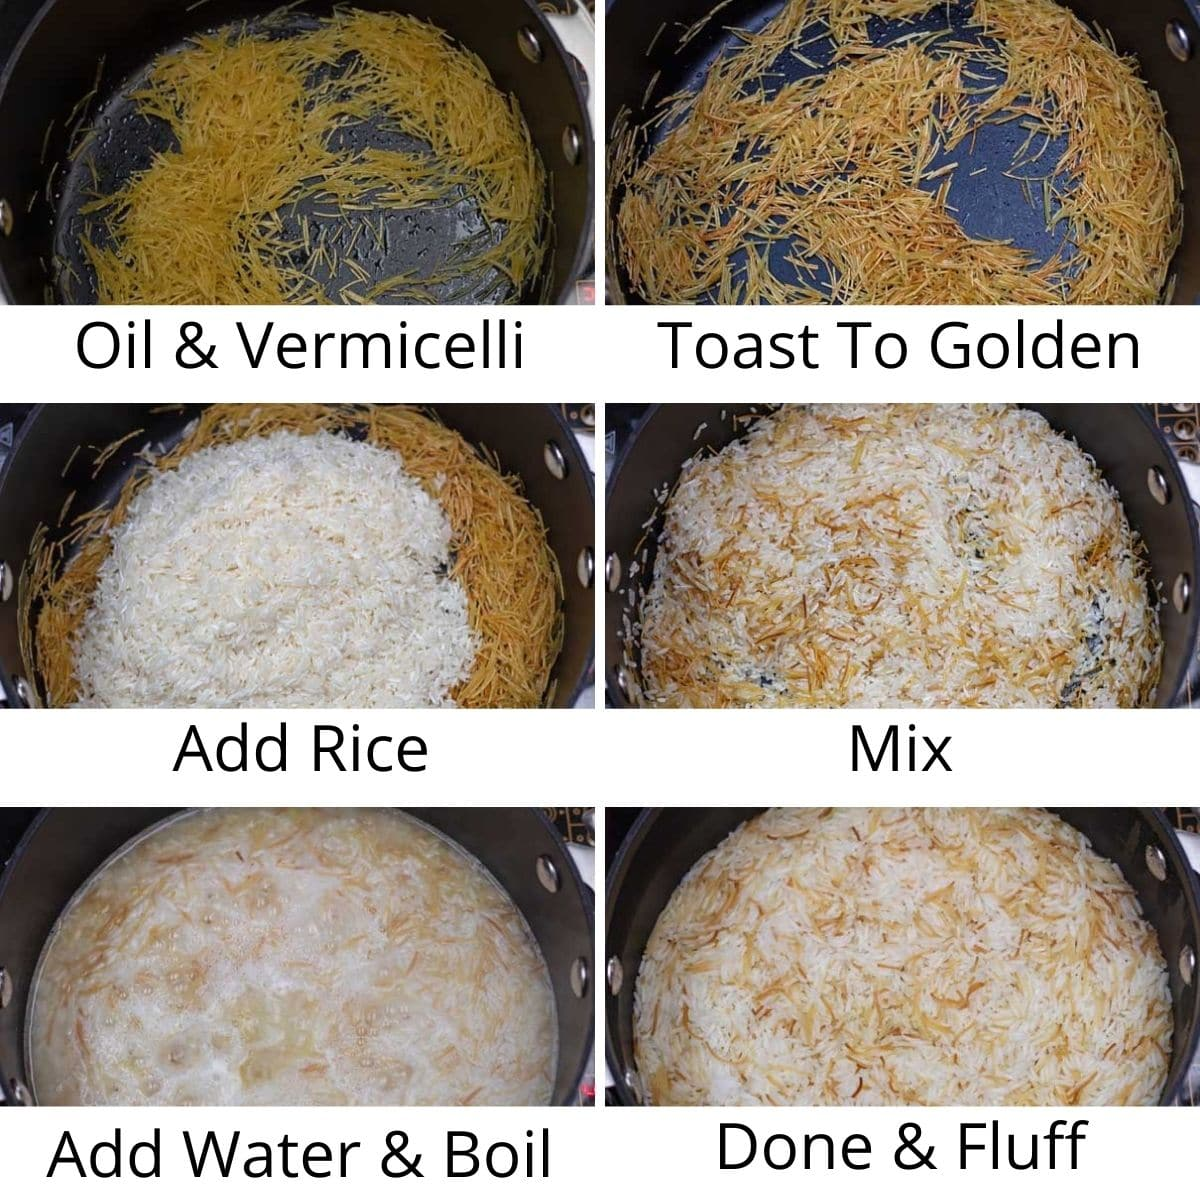 Process photos of making the vermicelli rice.